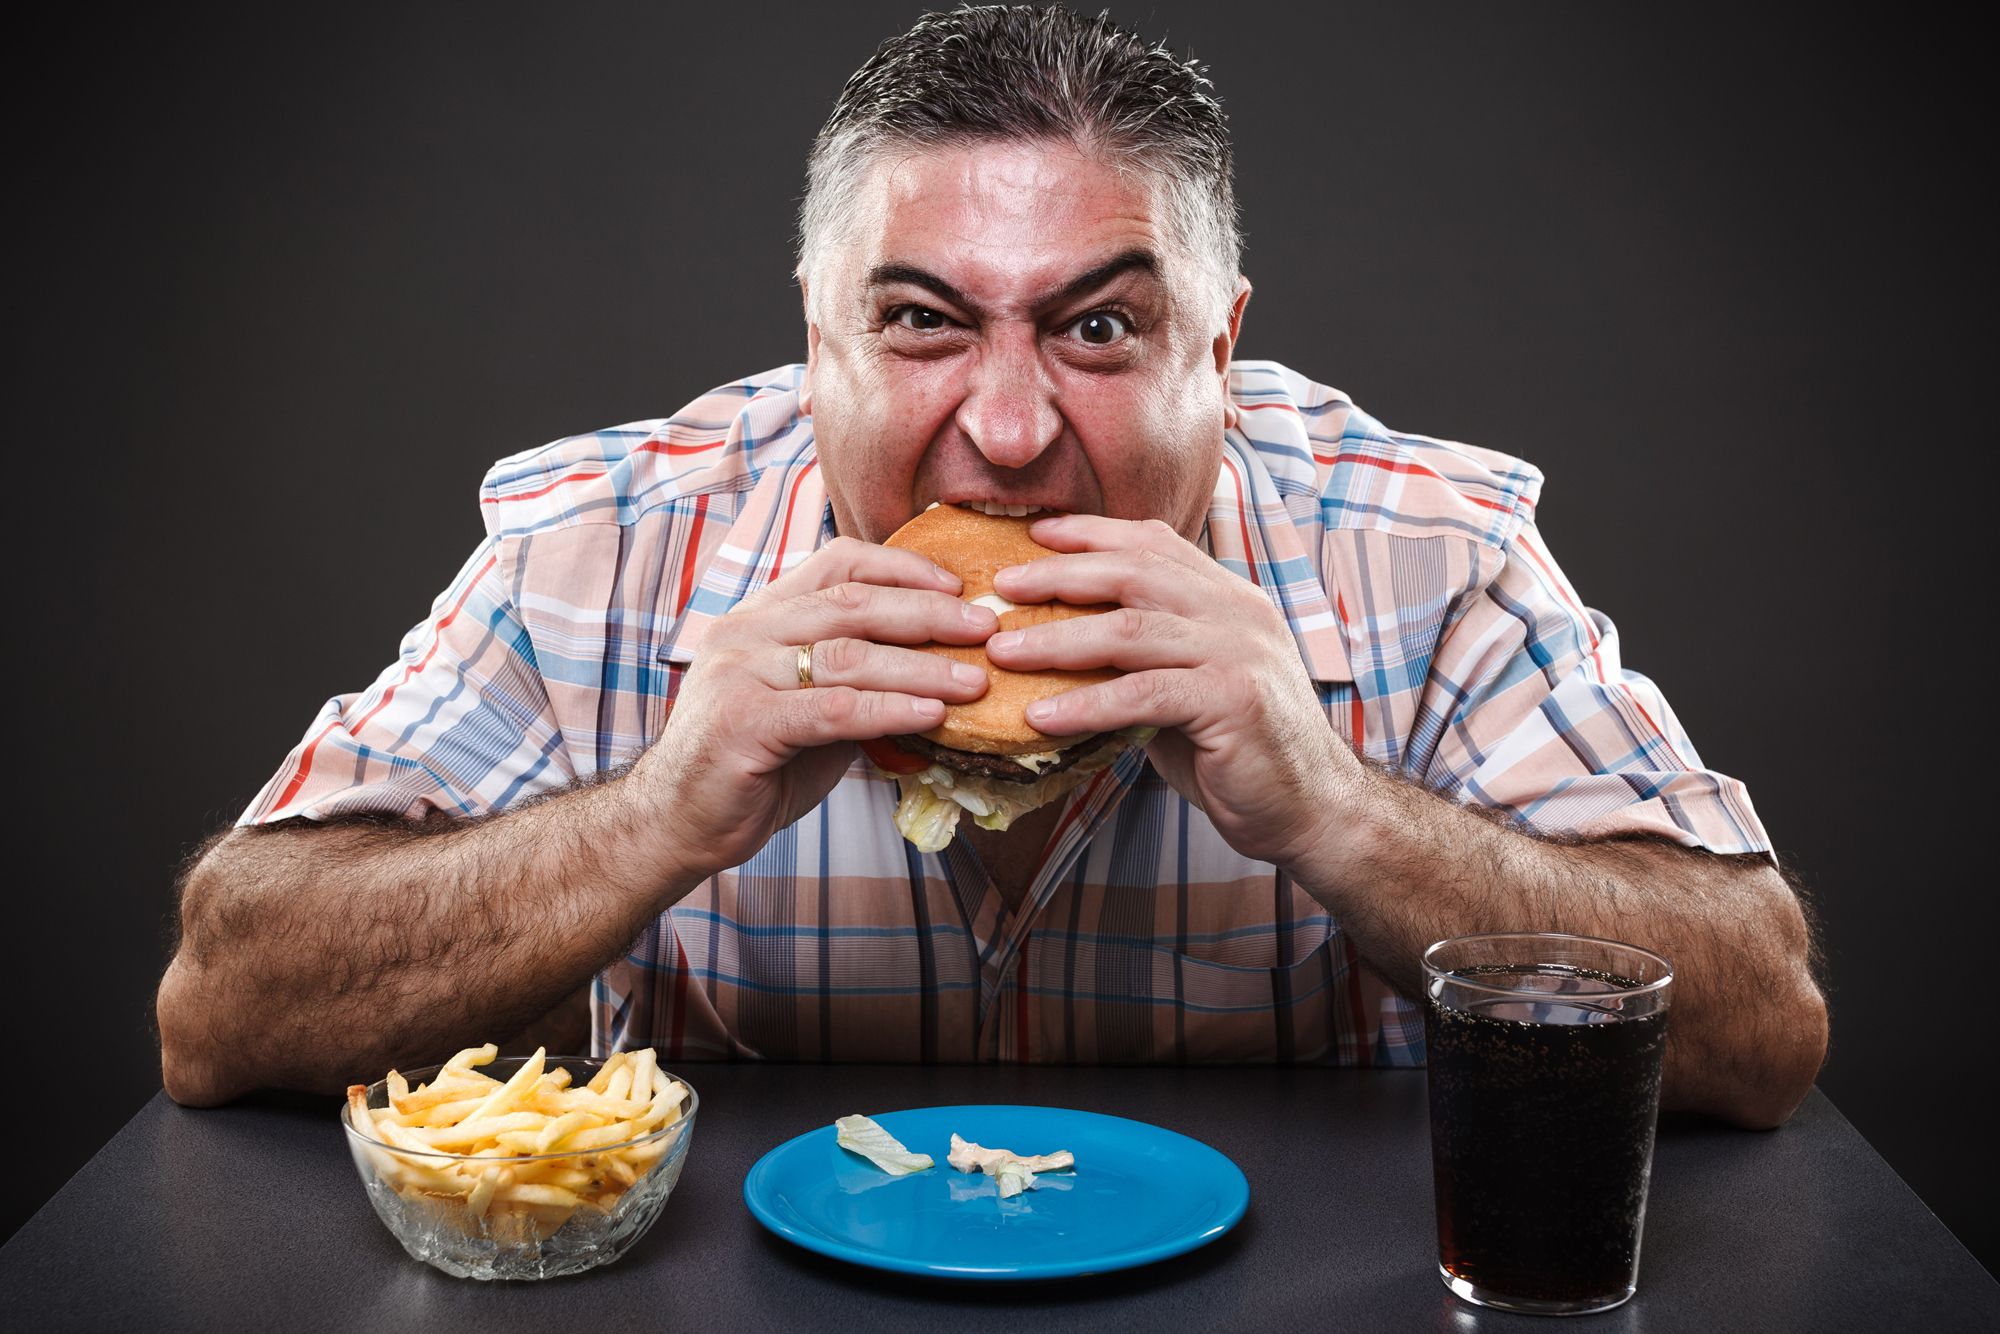 The eating mistake that doubles your chance of being a fattie | New York Post